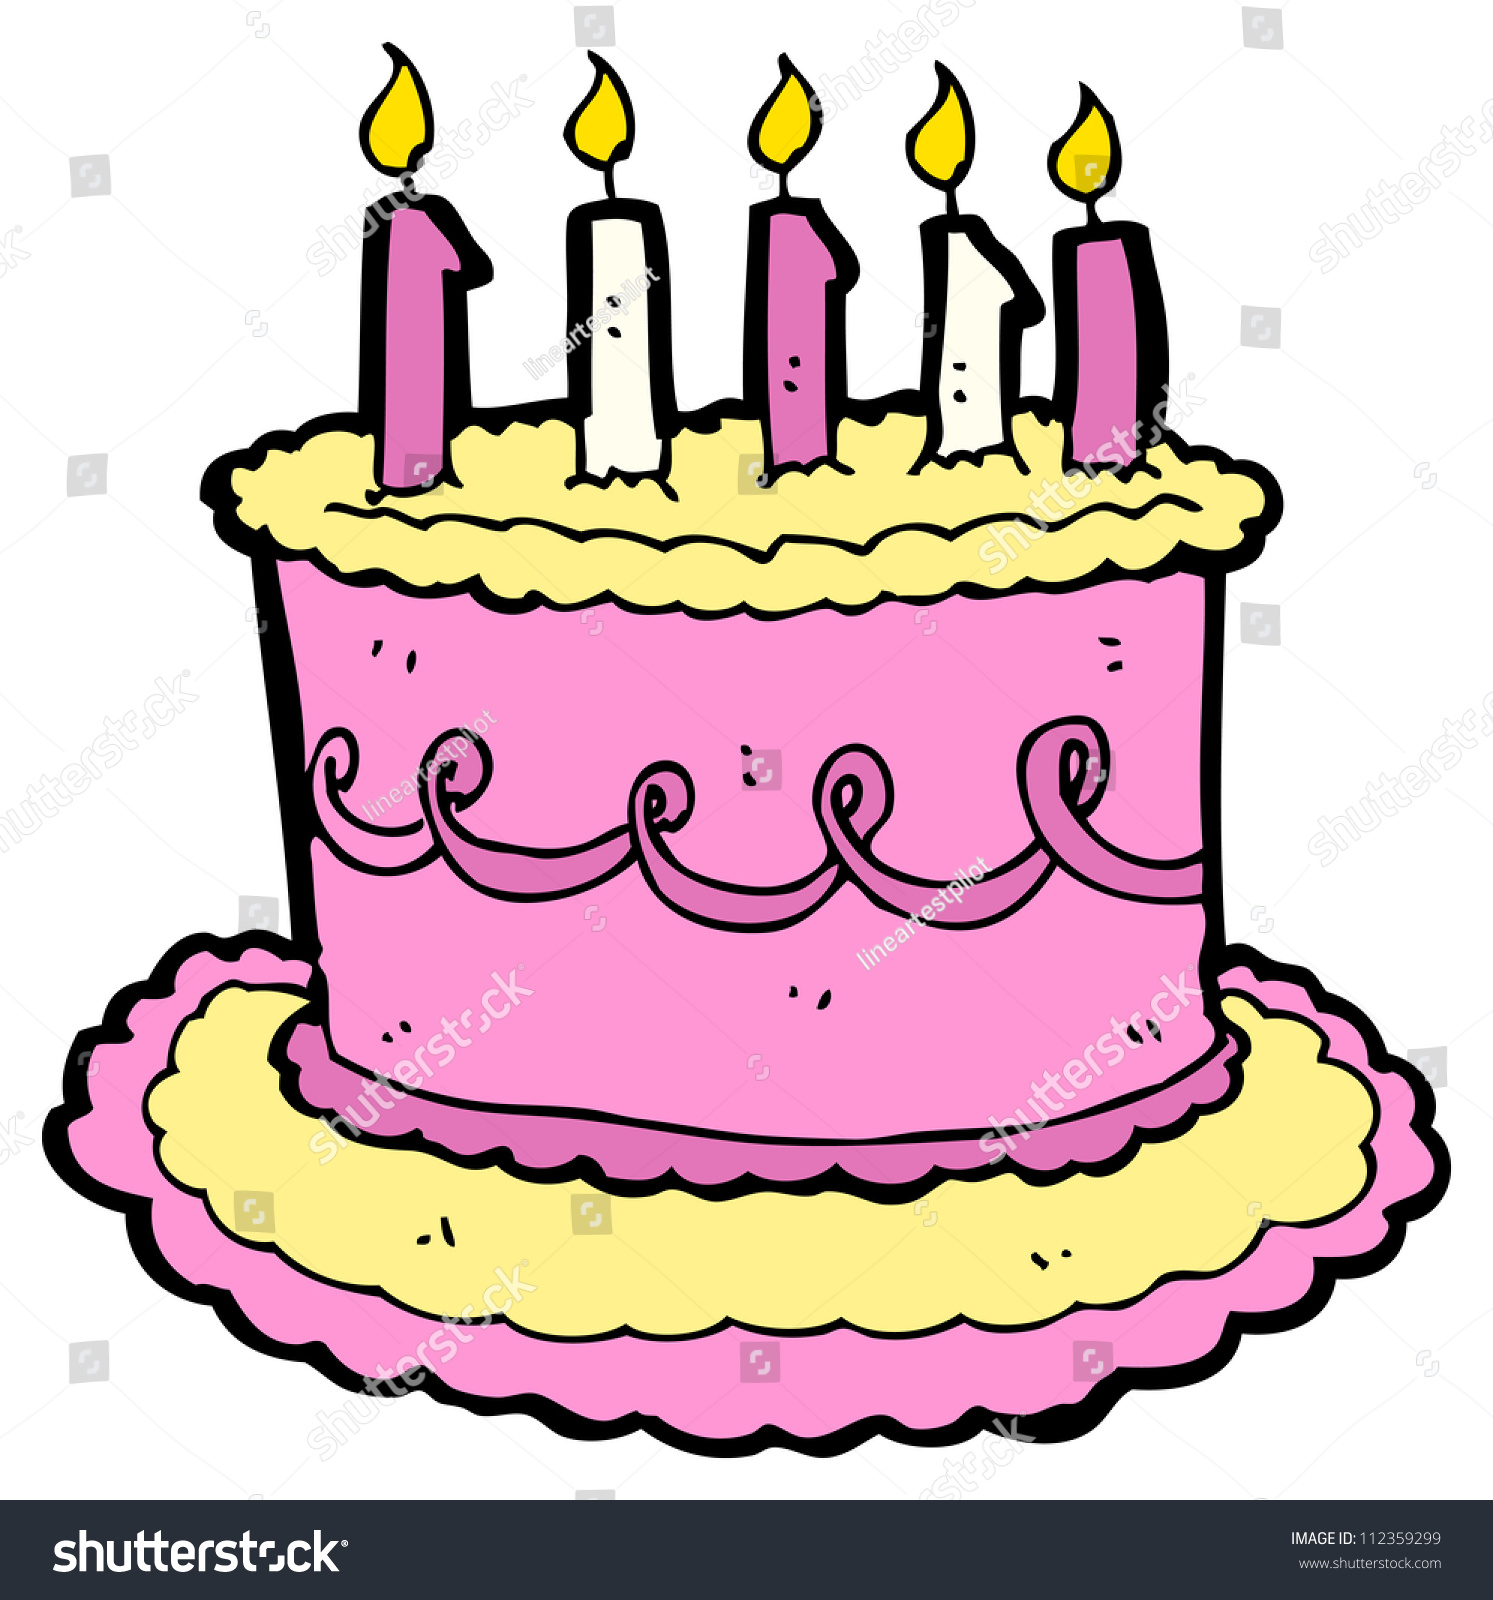 Birthday Ideas For Girl Turning 25 Image Inspiration of Cake and